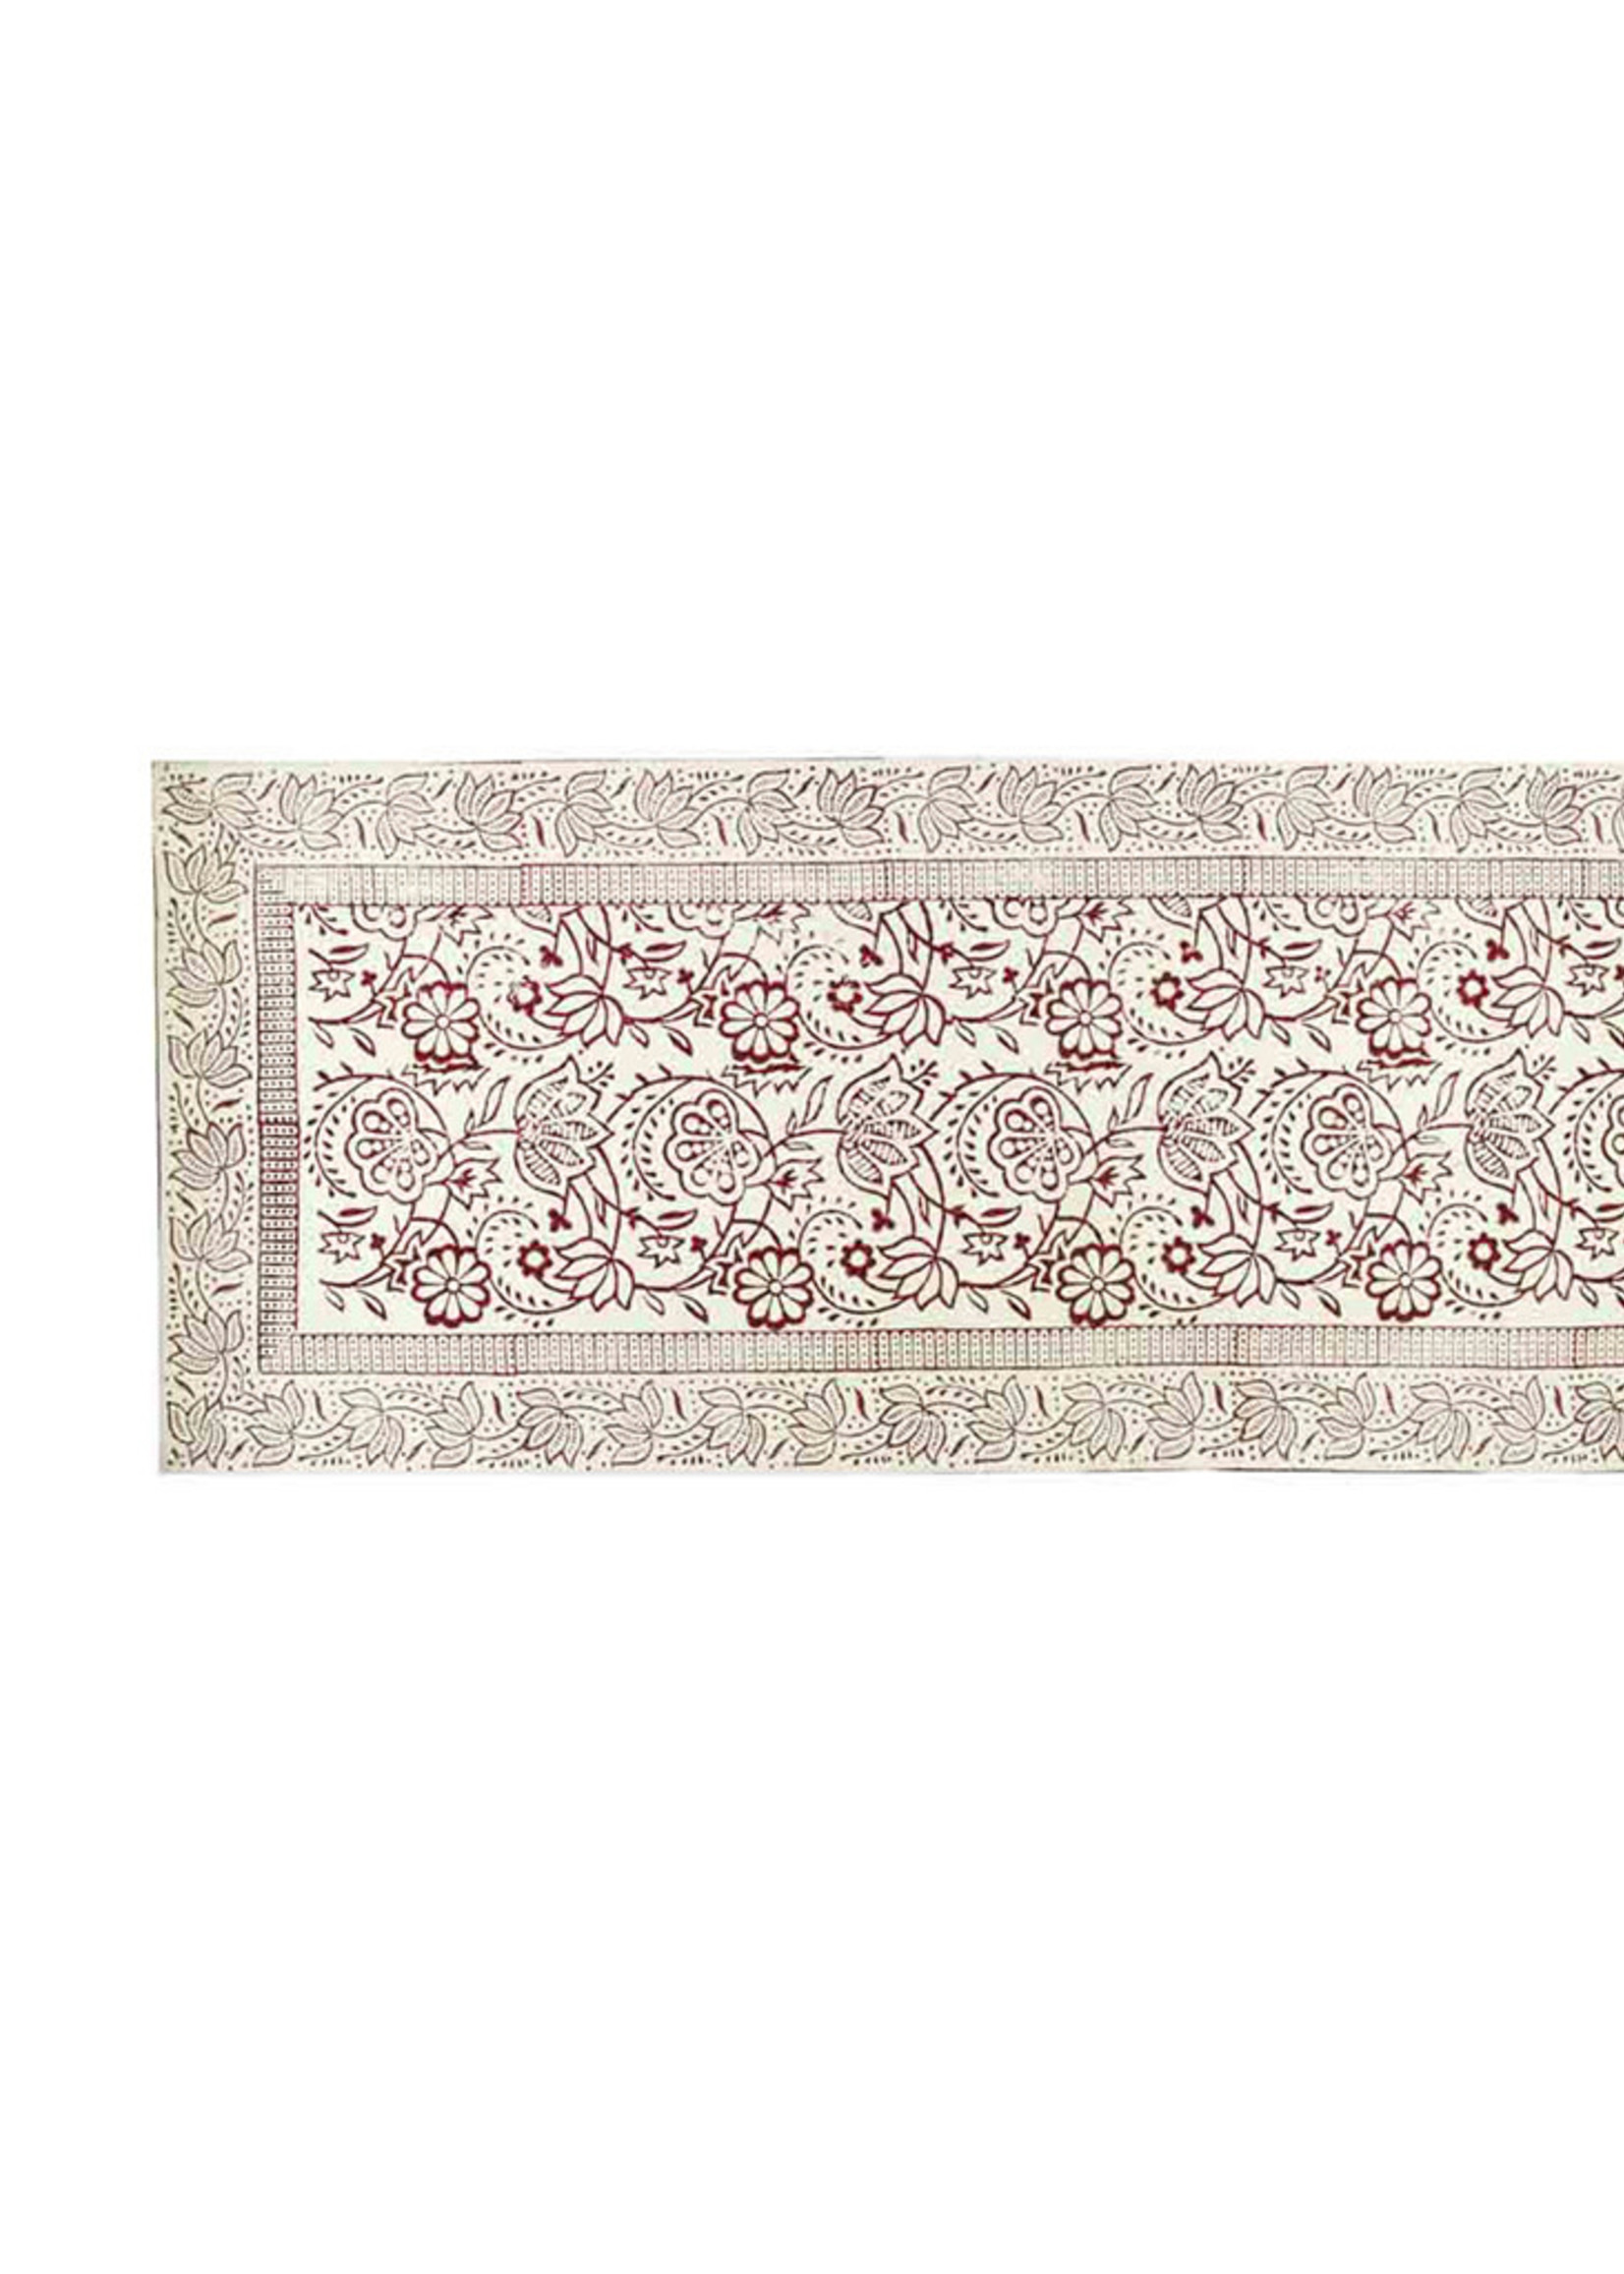 Cranberry Vines Table Runner